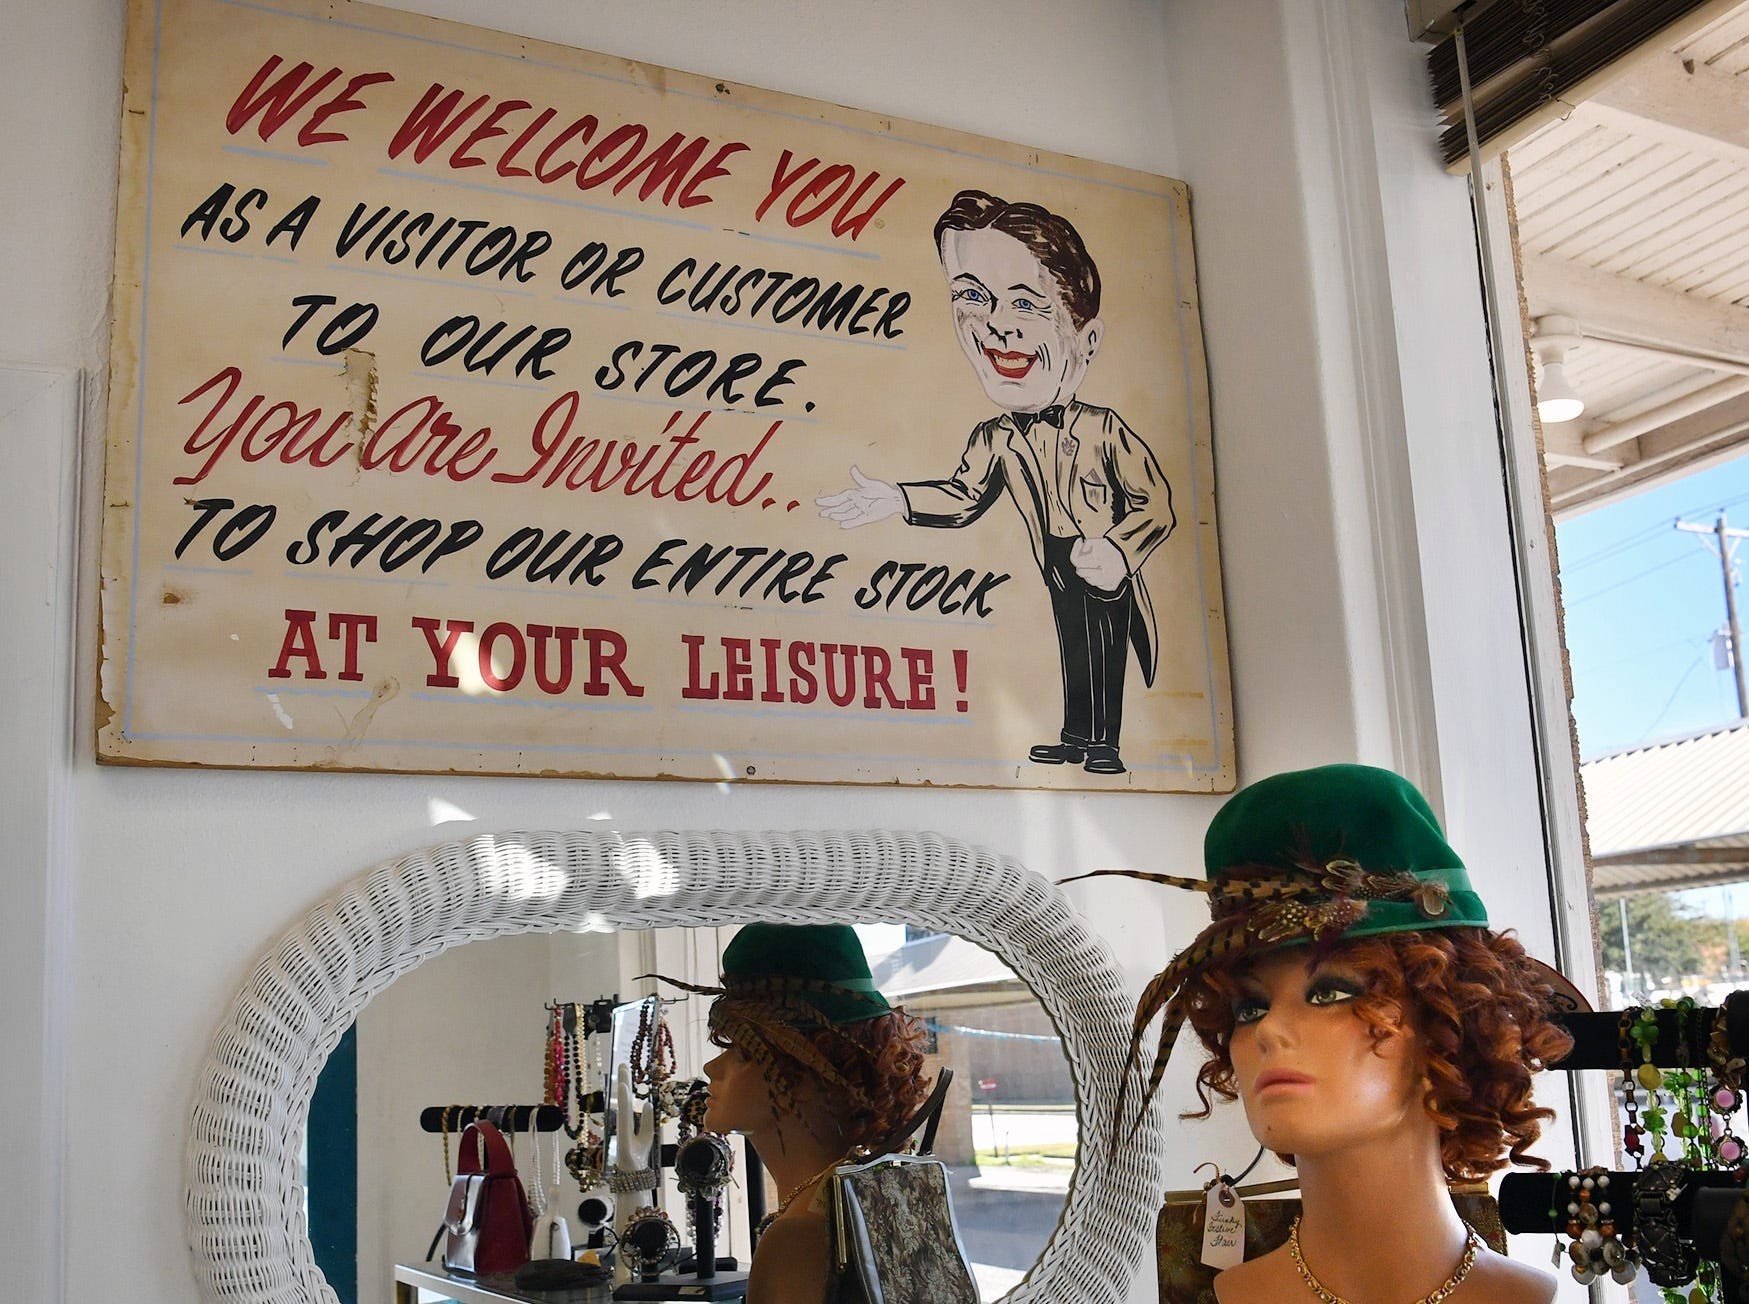 A sign original to the former Gragg Motor Company now welcomes customers into the new Fashion Garage, a vintage clothing boutique.